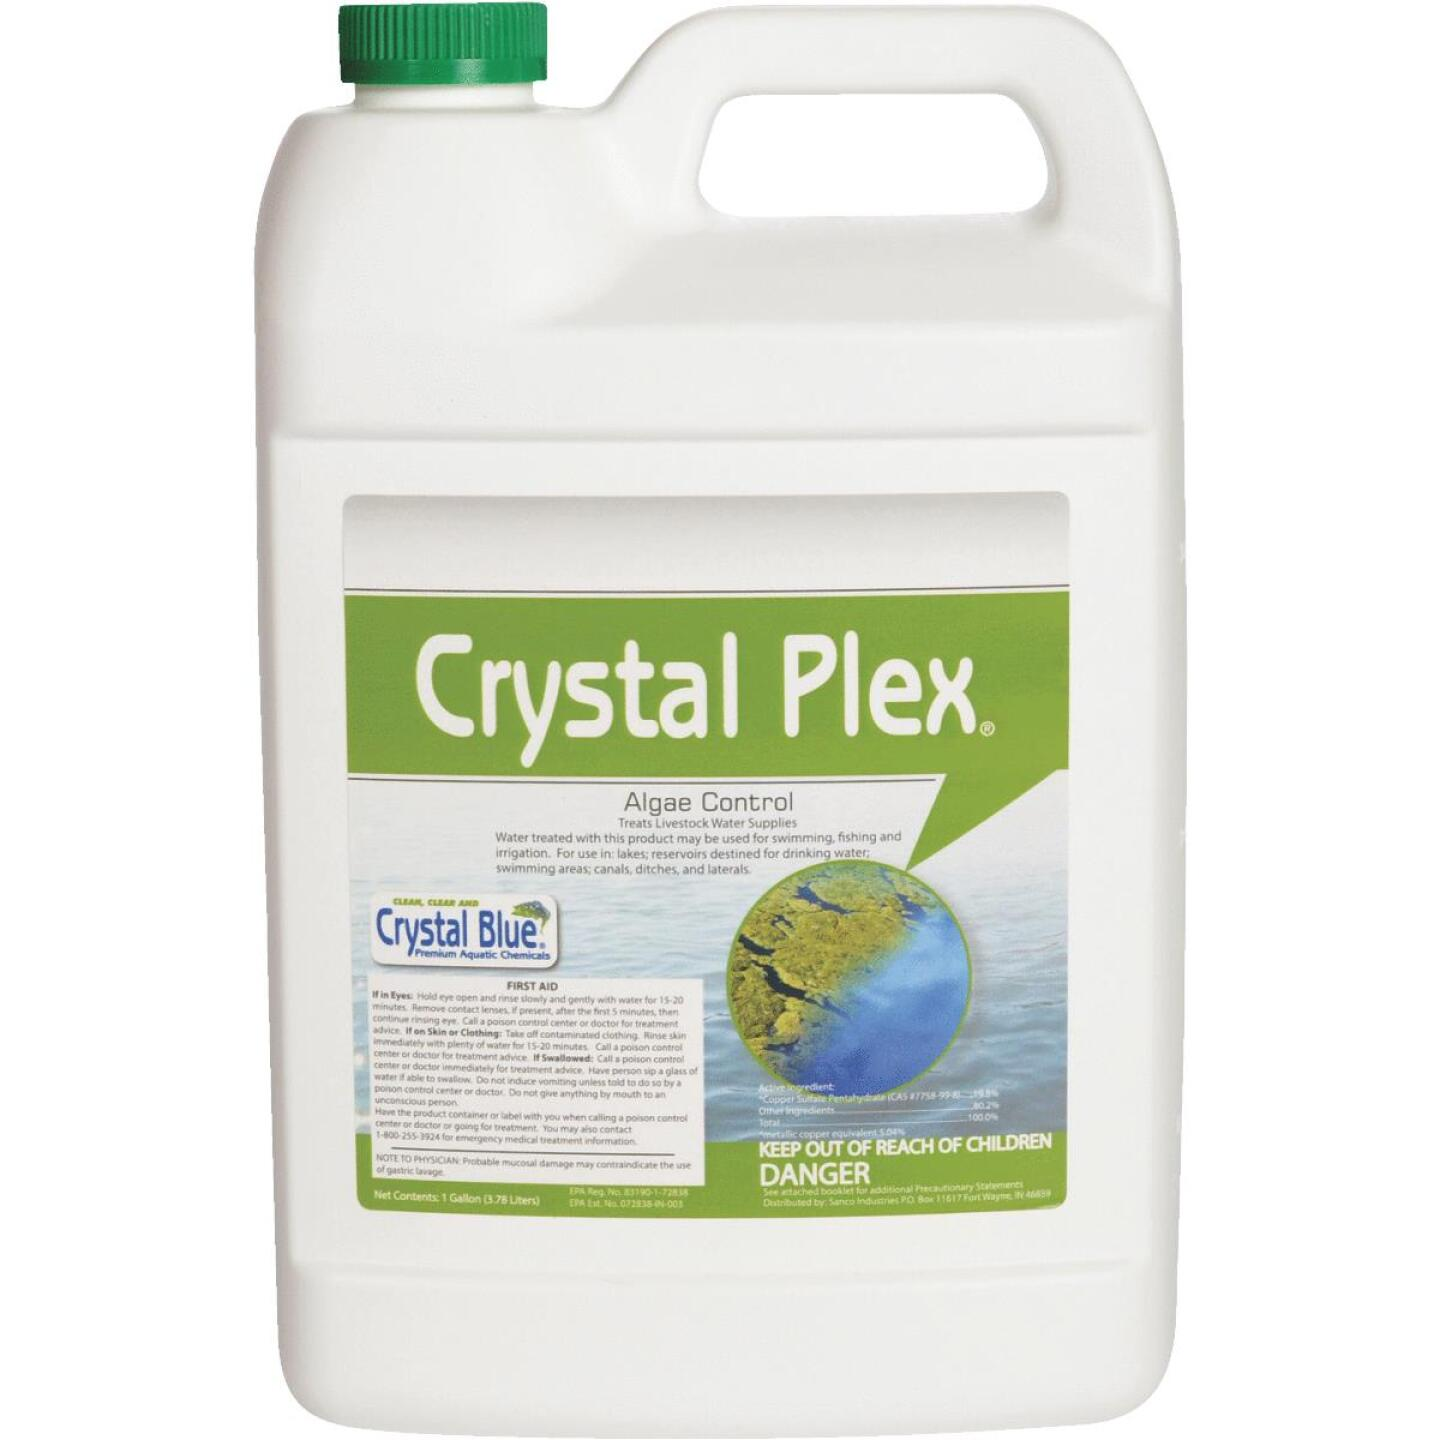 Crystal Plex 1 Gal. Liquid 1-Acre Coverage Area Algae Control Step 3 Gallon Image 1